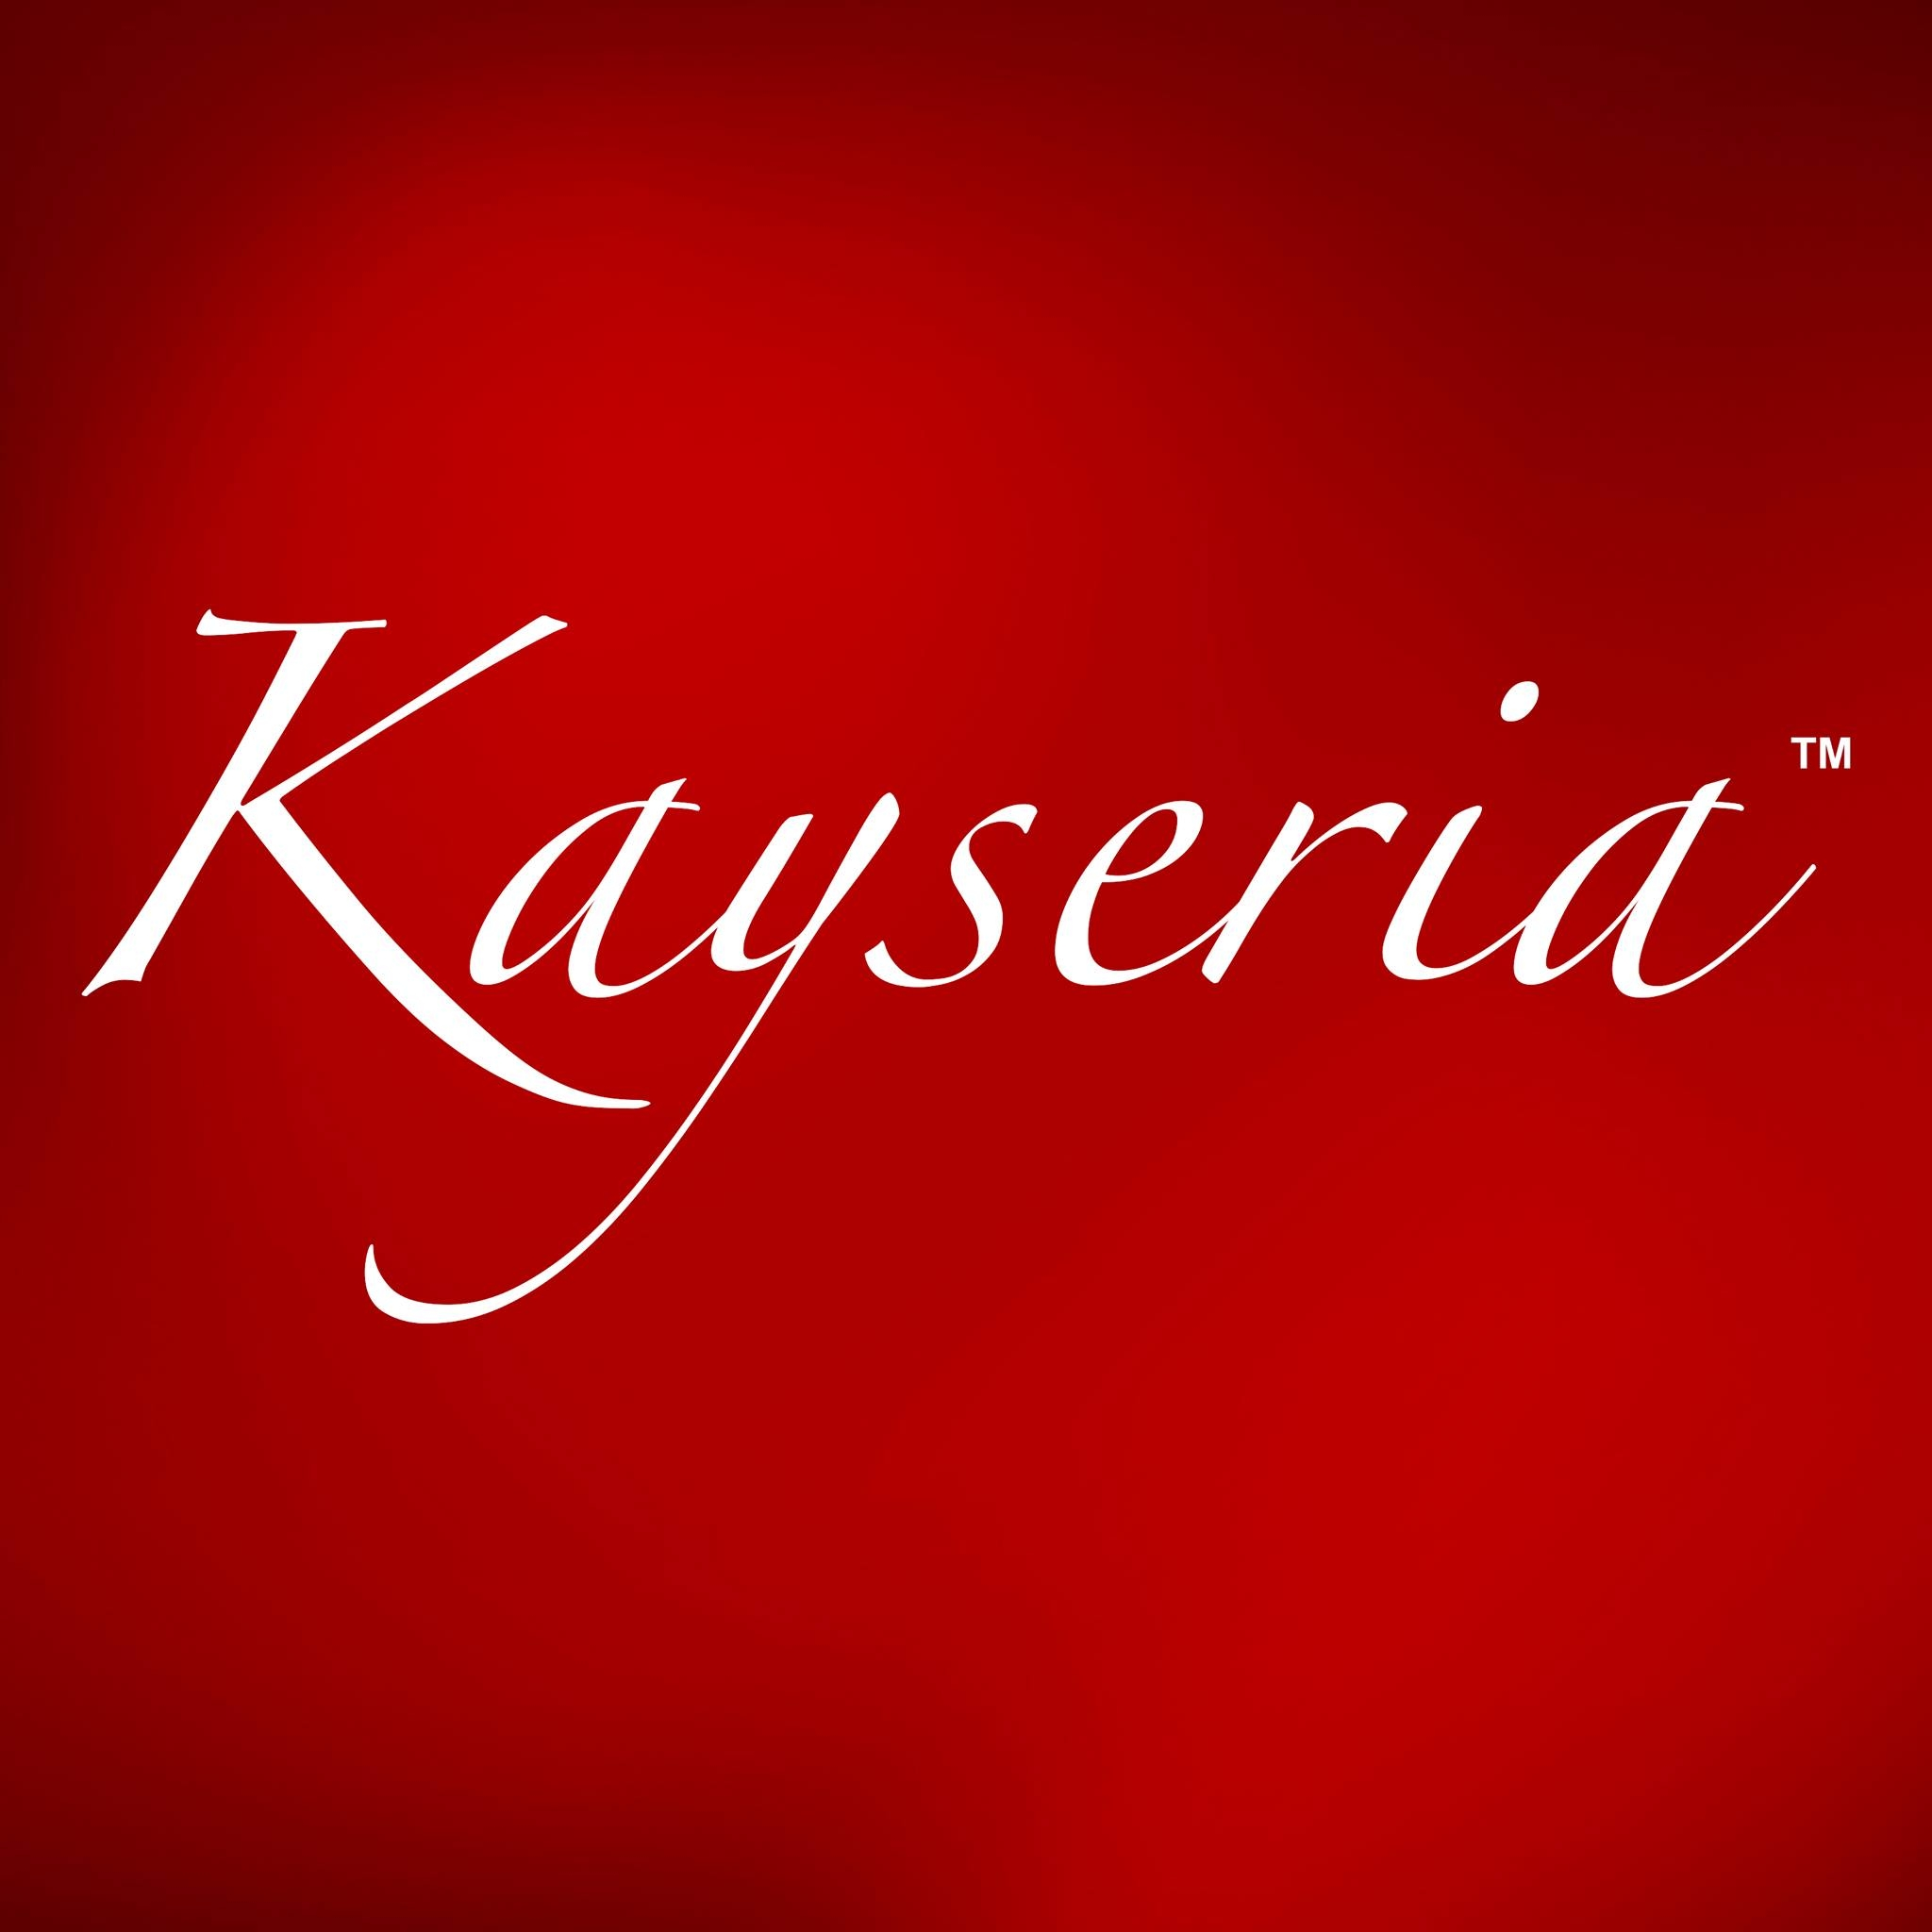 Kayseria's Sales, Promotions and Deals